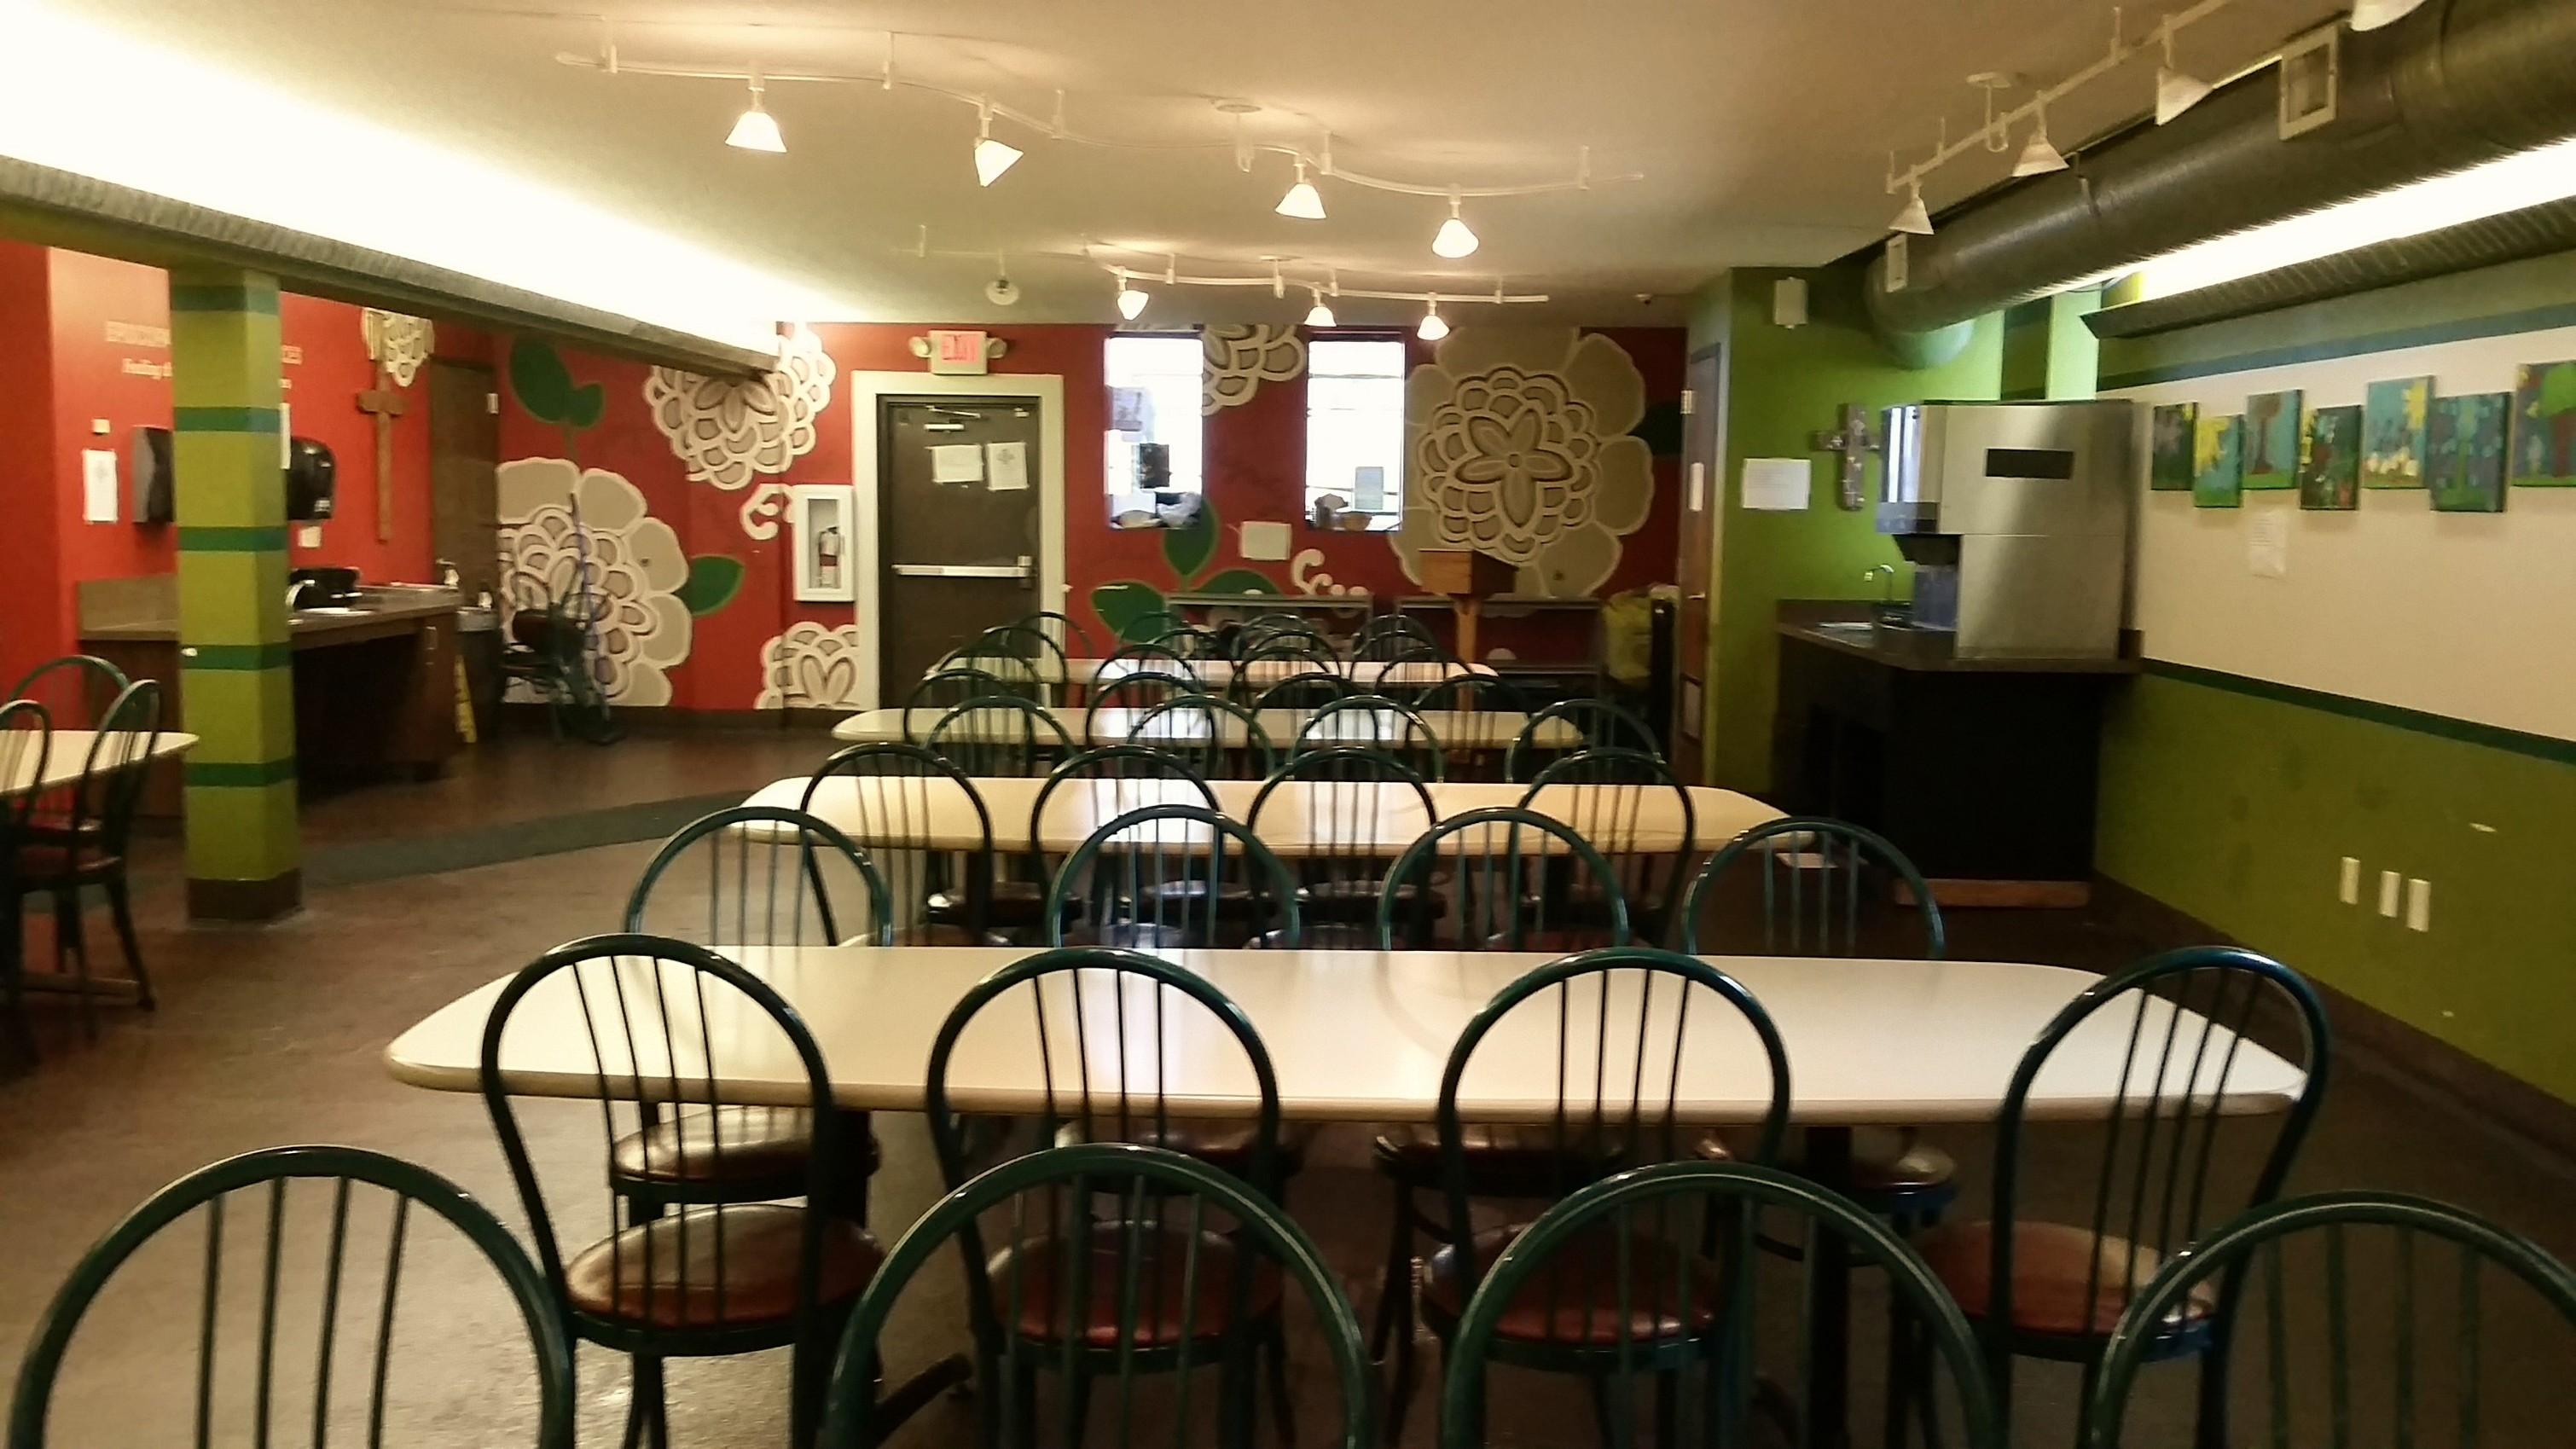 Kansas city community kitchen nourishkc formerly for W kitchen cafe gandaria city